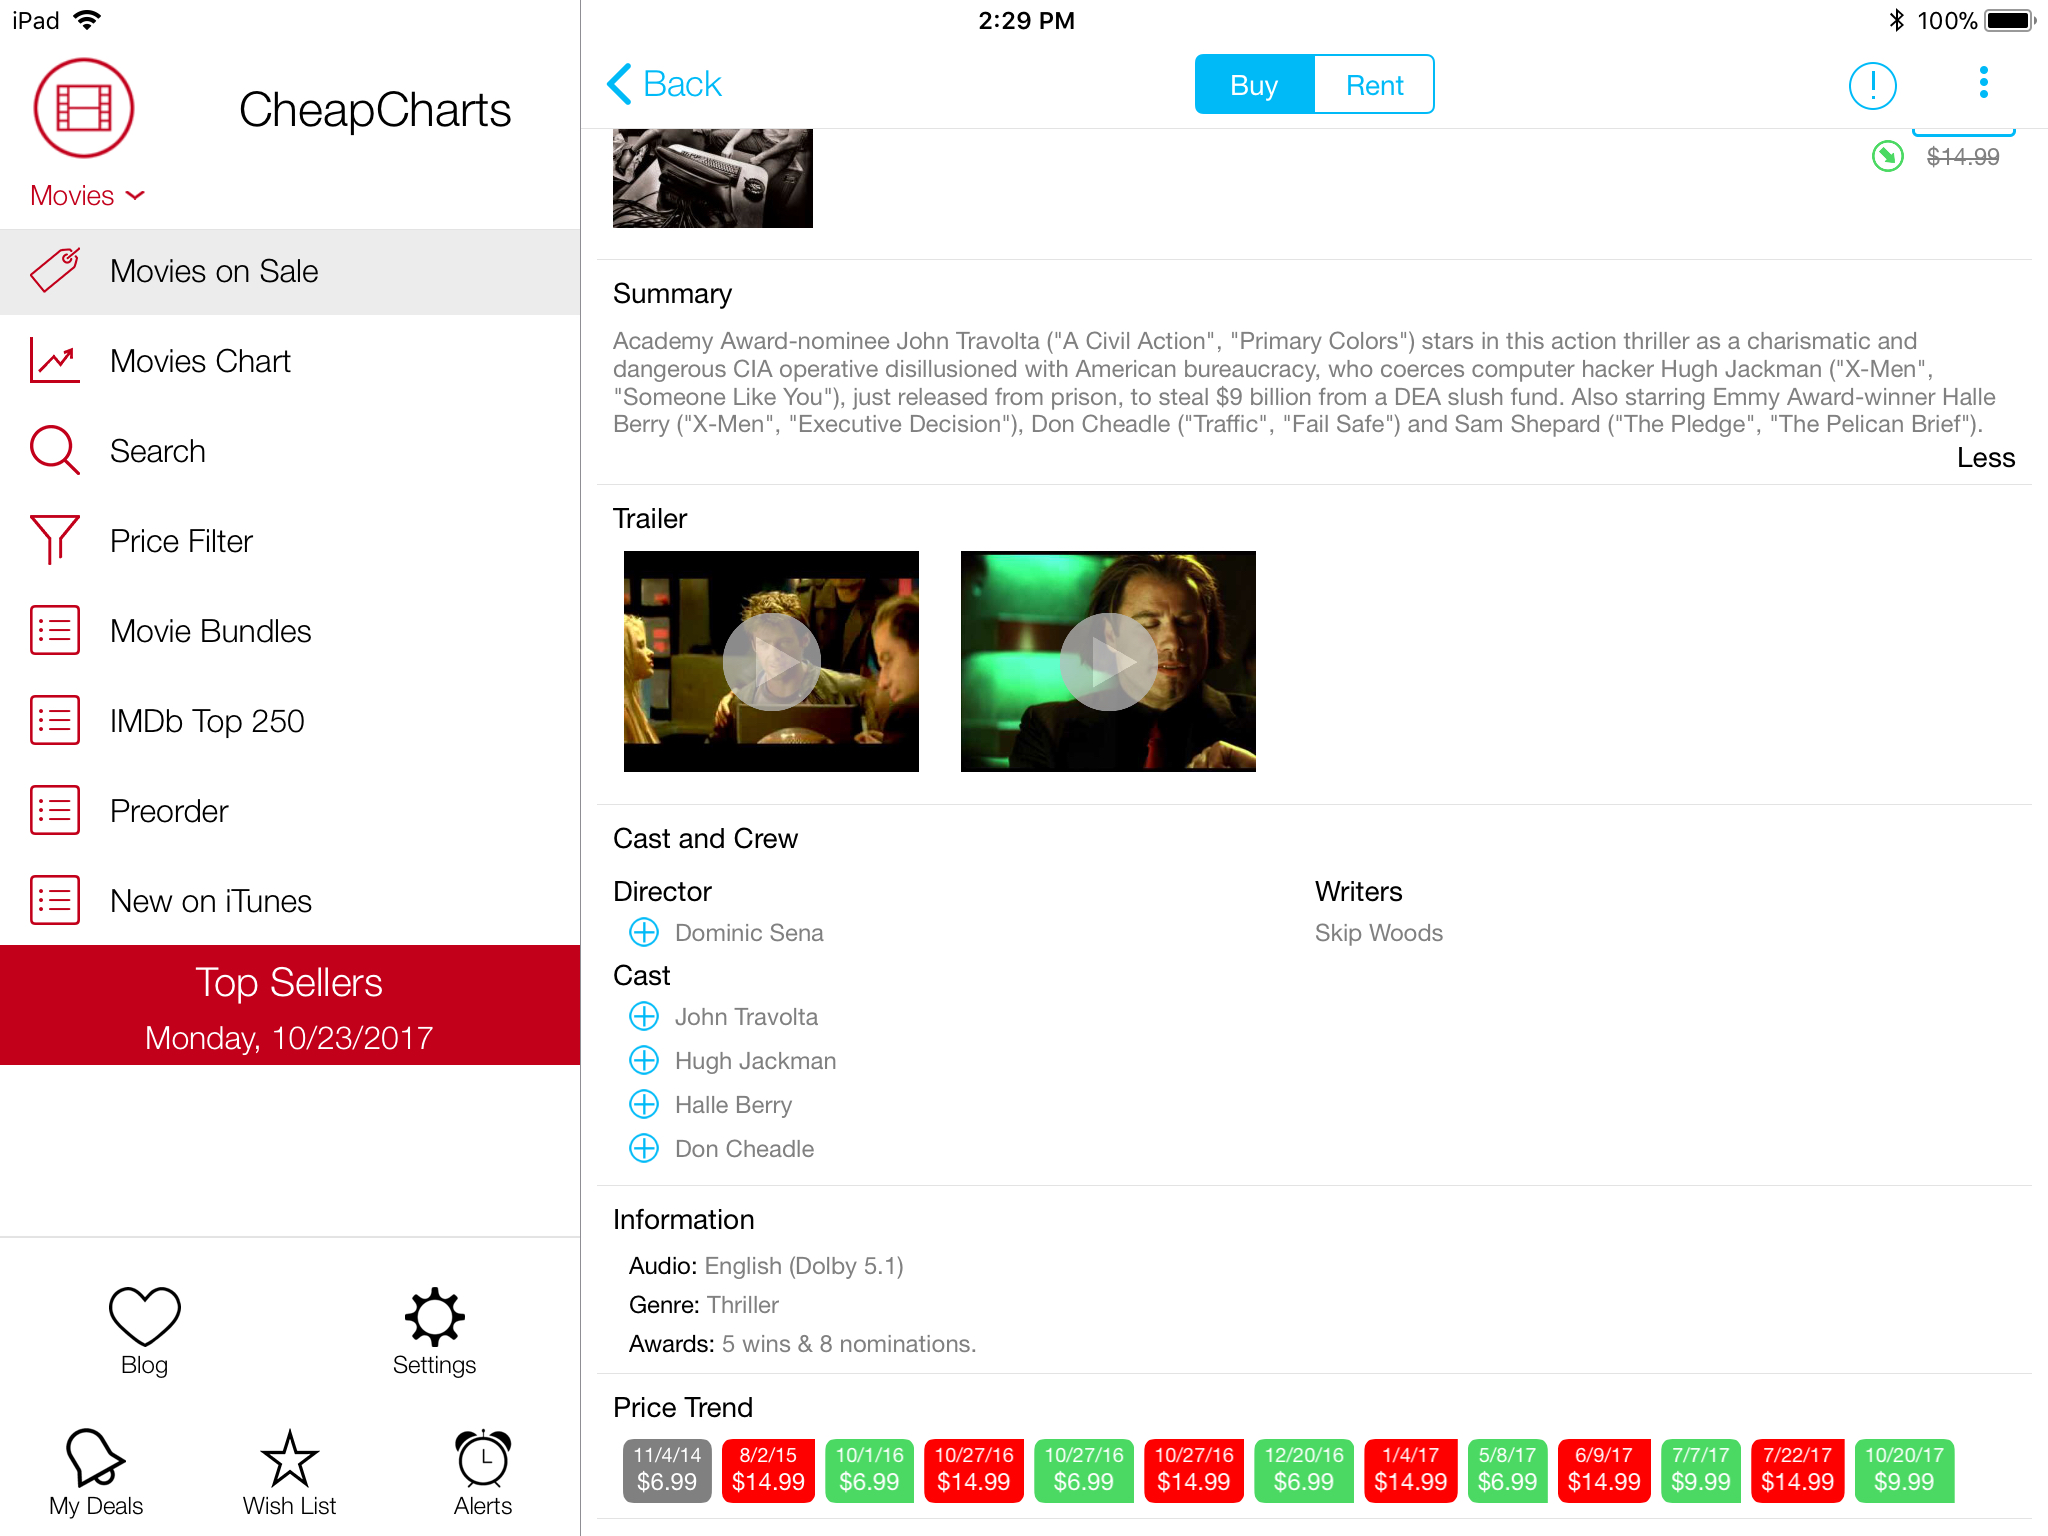 Get the best prices on your favorite iTunes content with CheapCharts